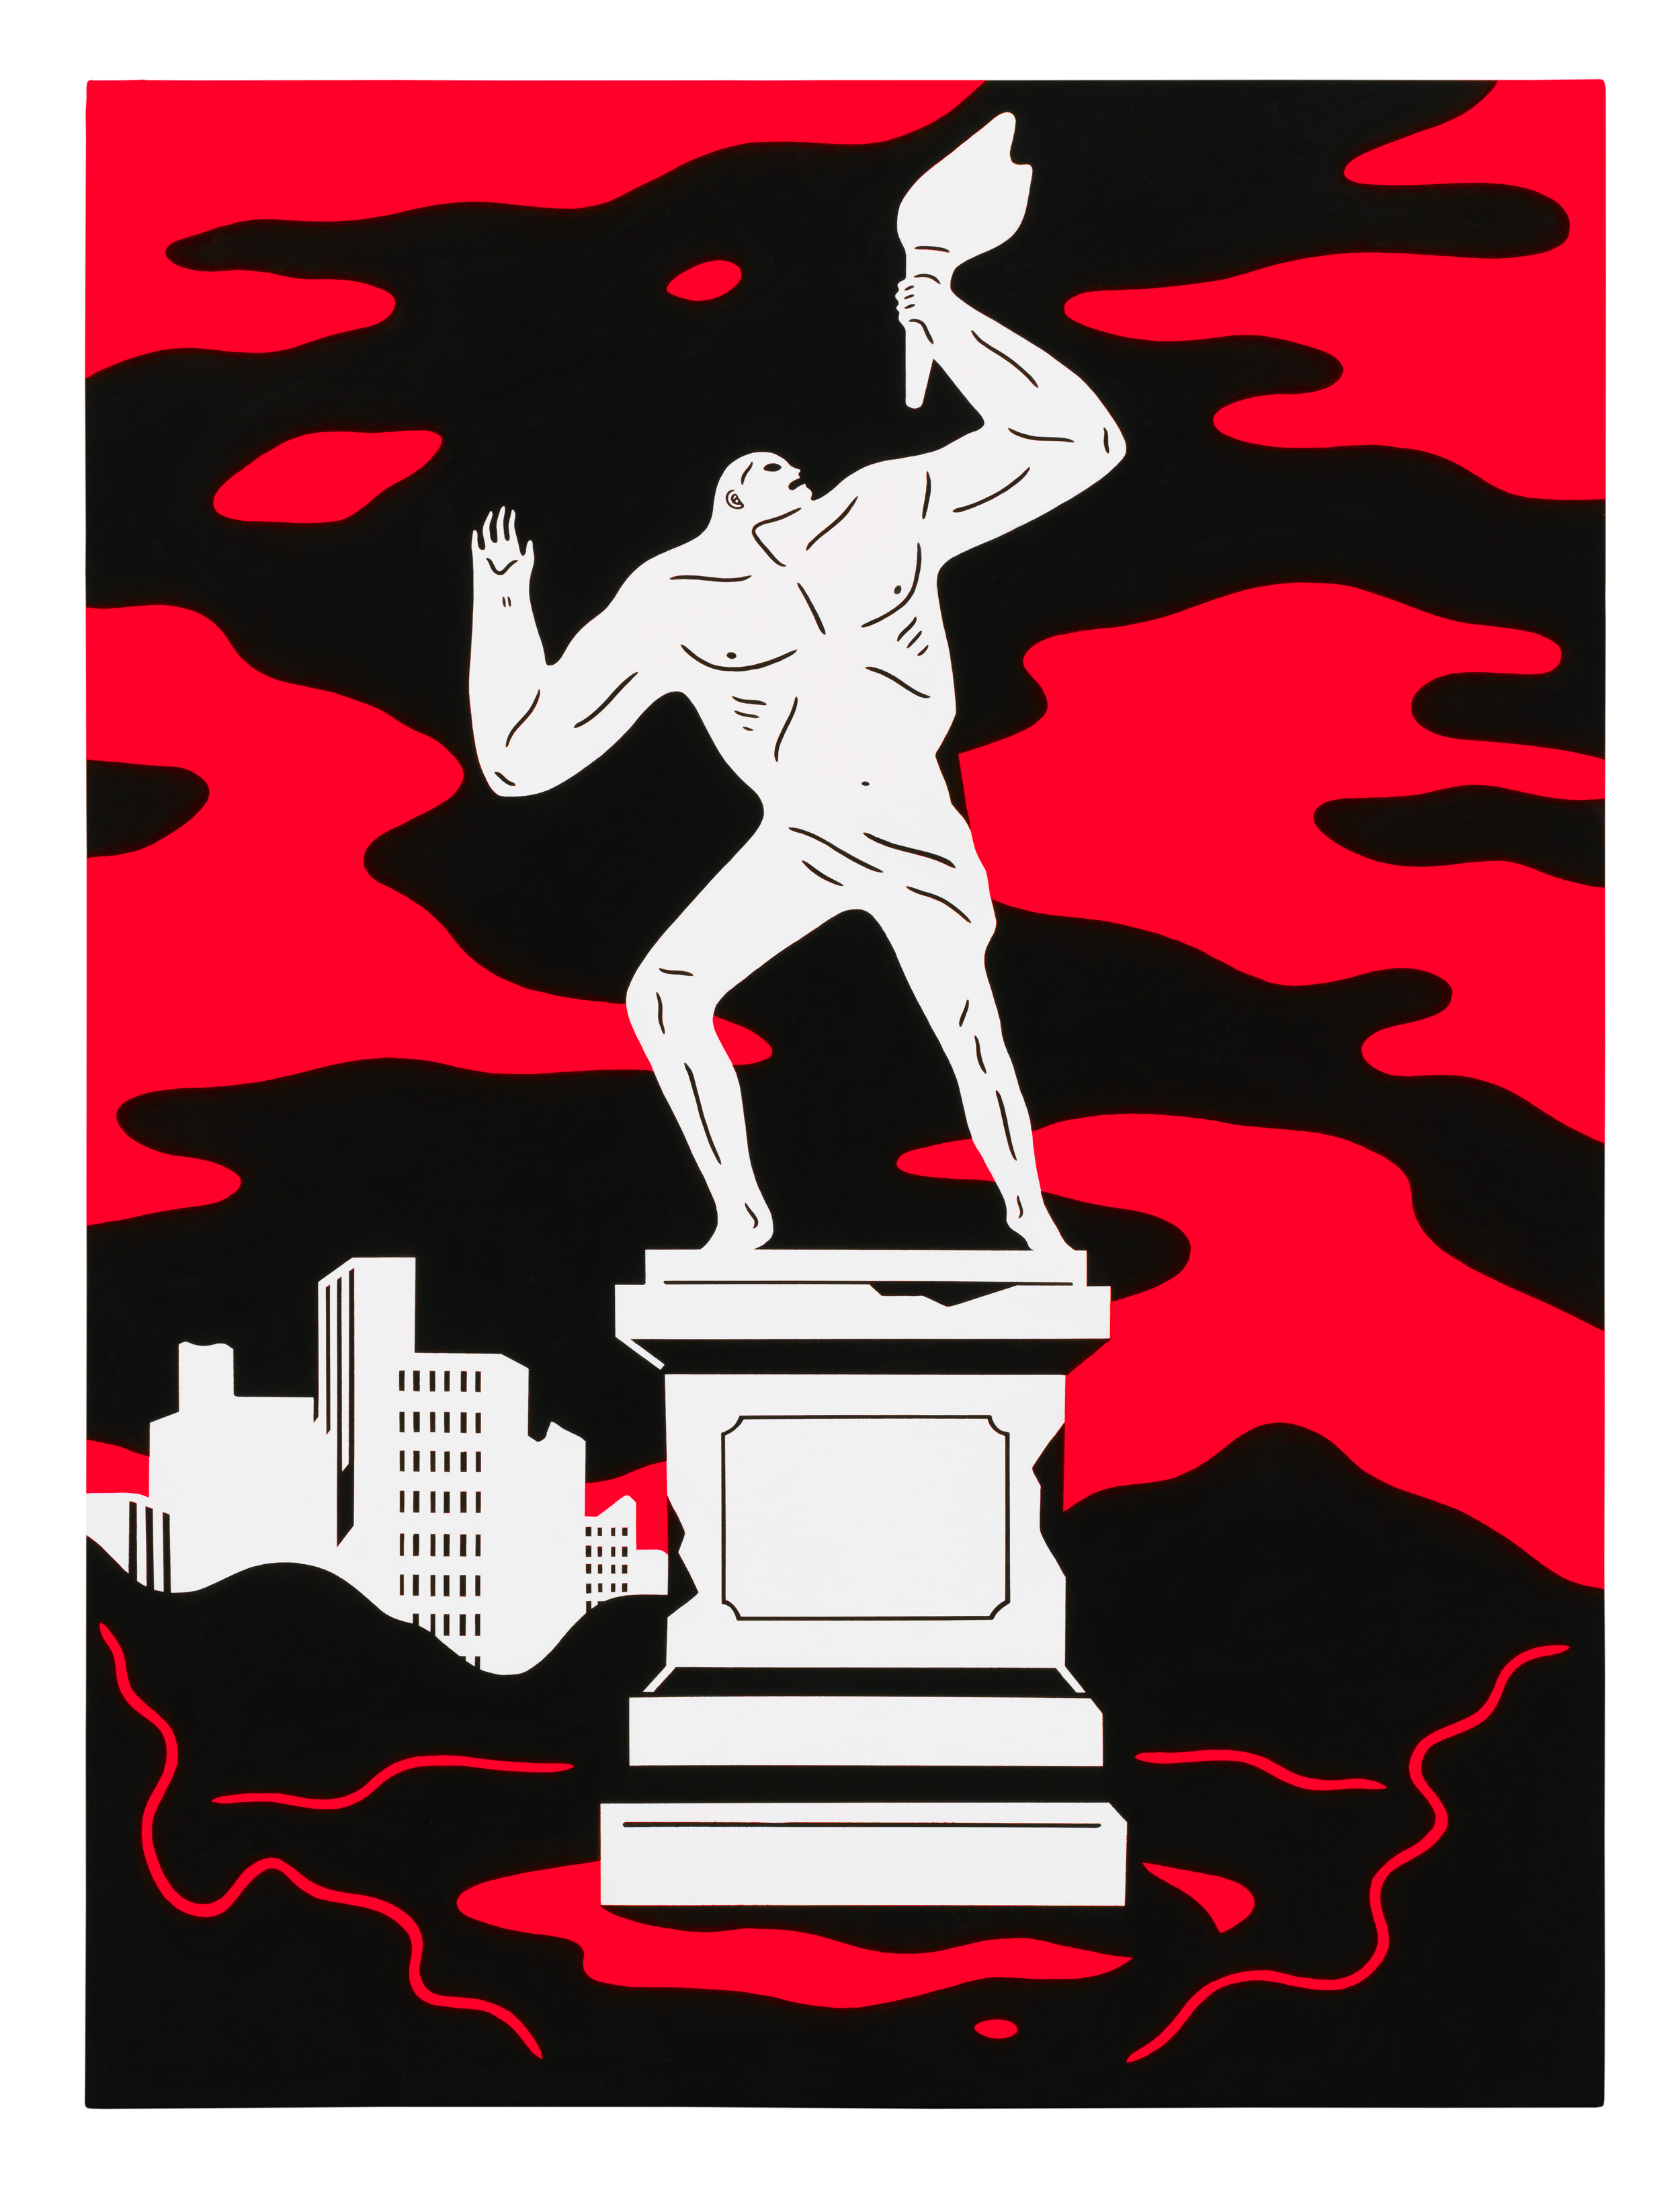 Monument-to-Power-Nationalism-cleon-peterson-amadeus